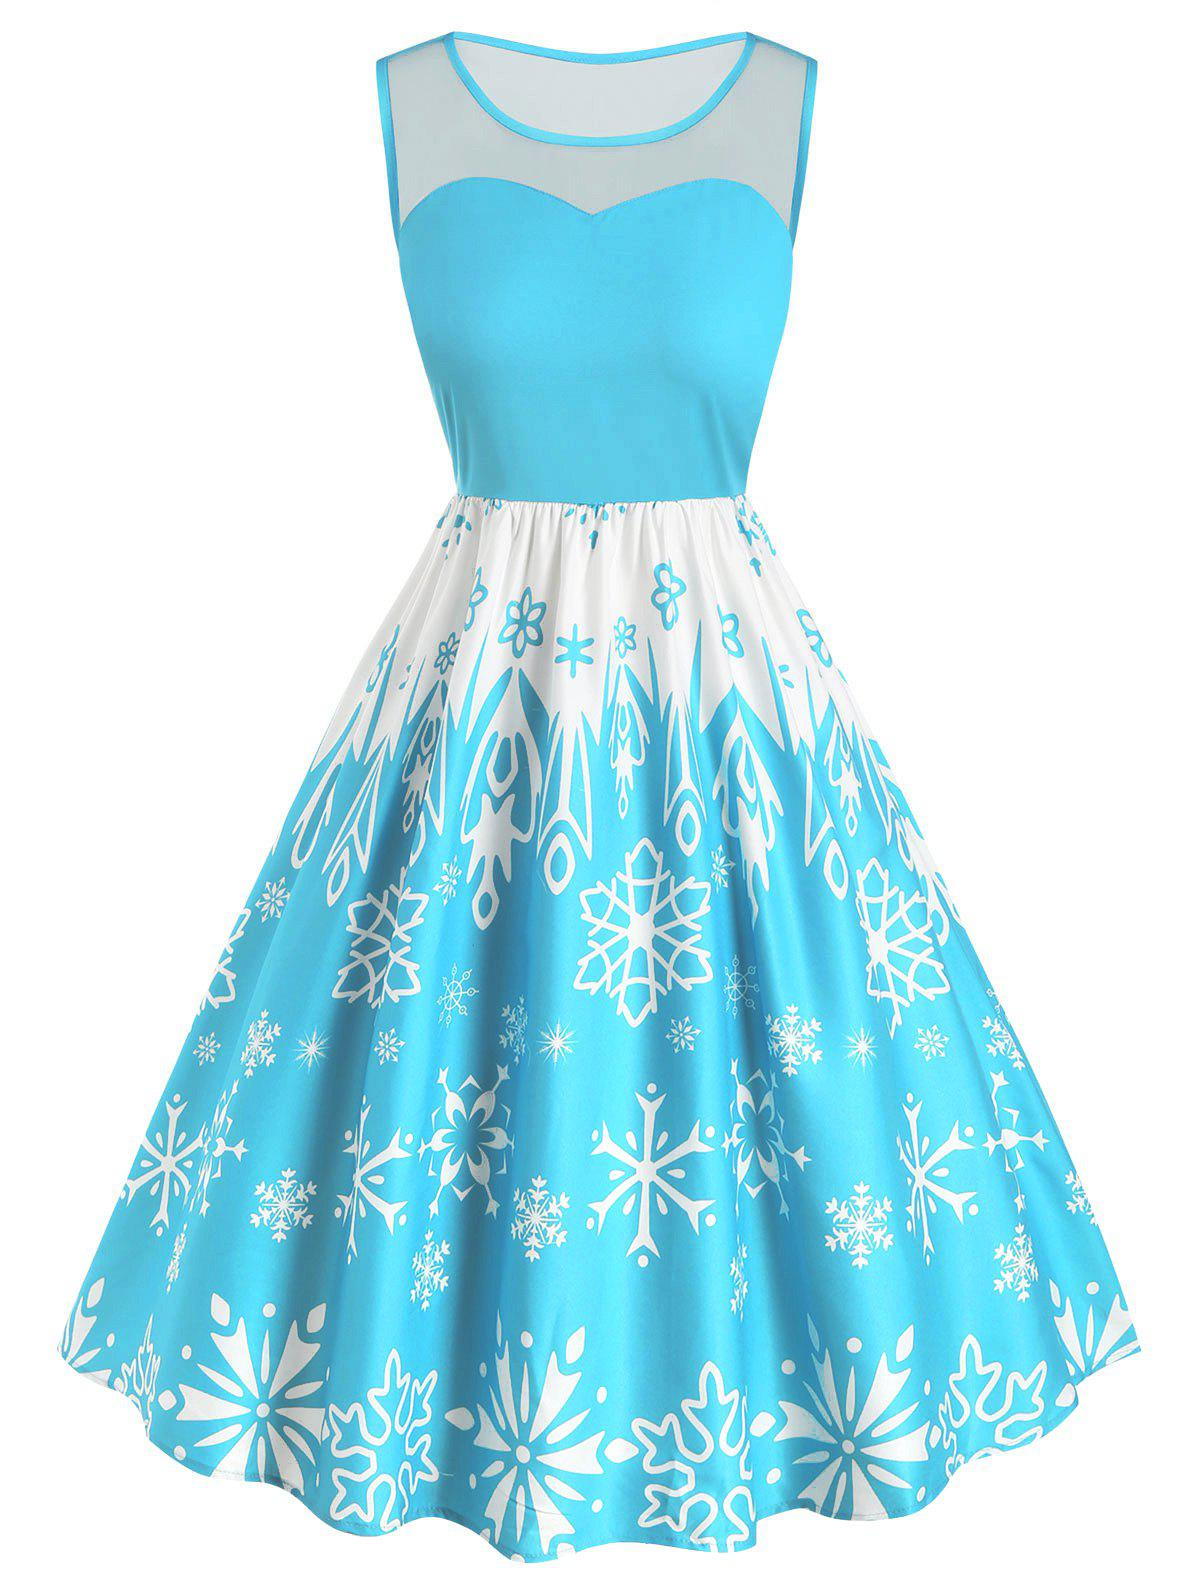 Plus Size Christmas Vintage Snowflake Print Party Dress фото